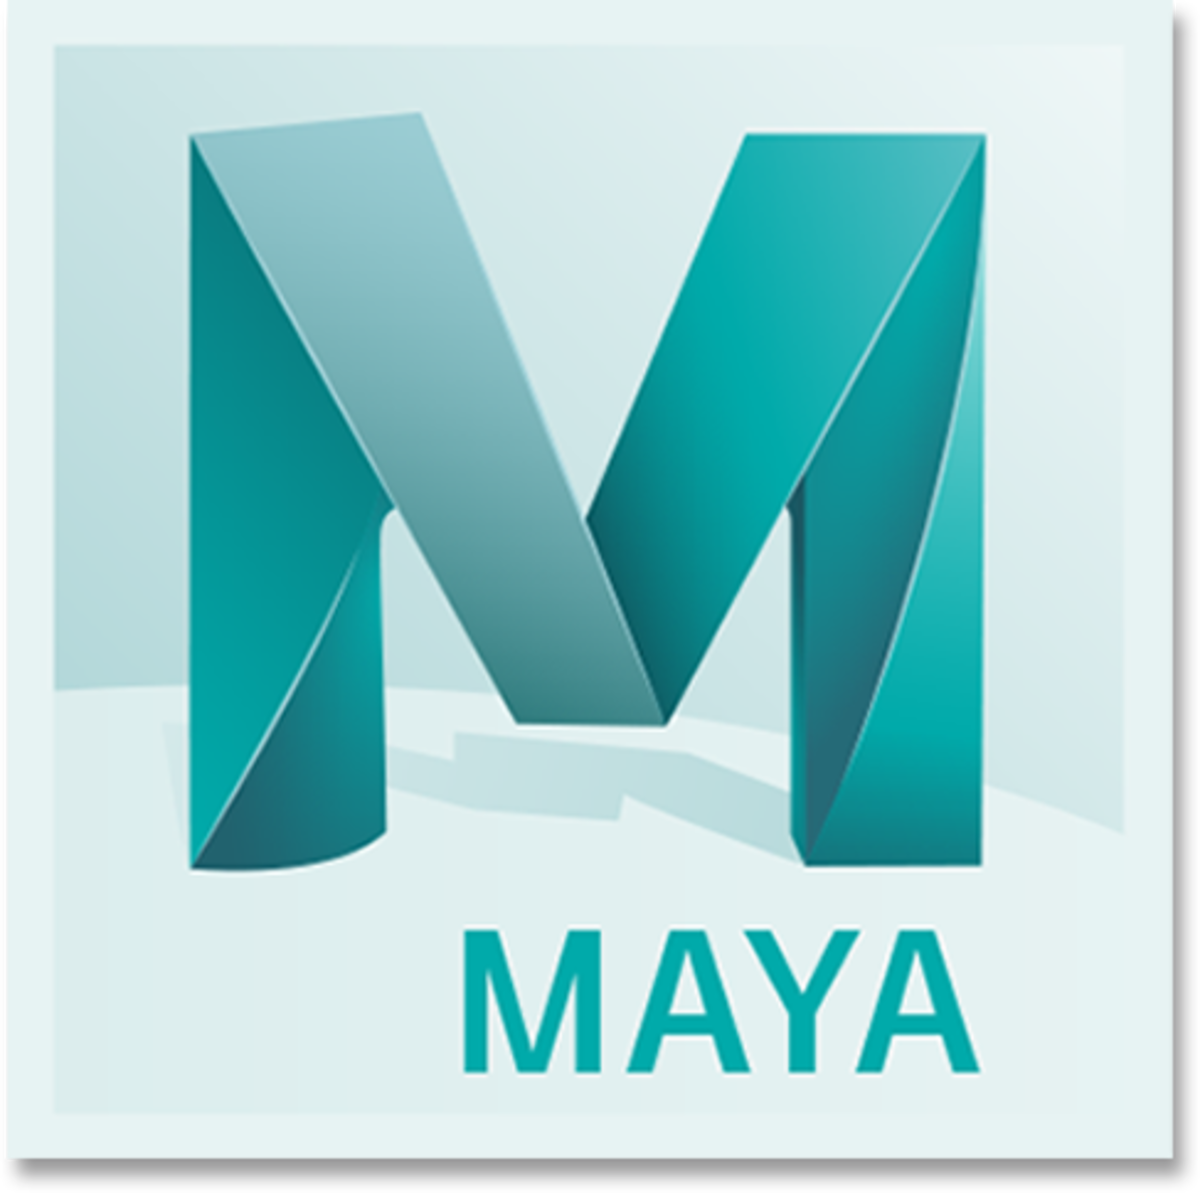 The above image is the Logo for Autodesk Maya